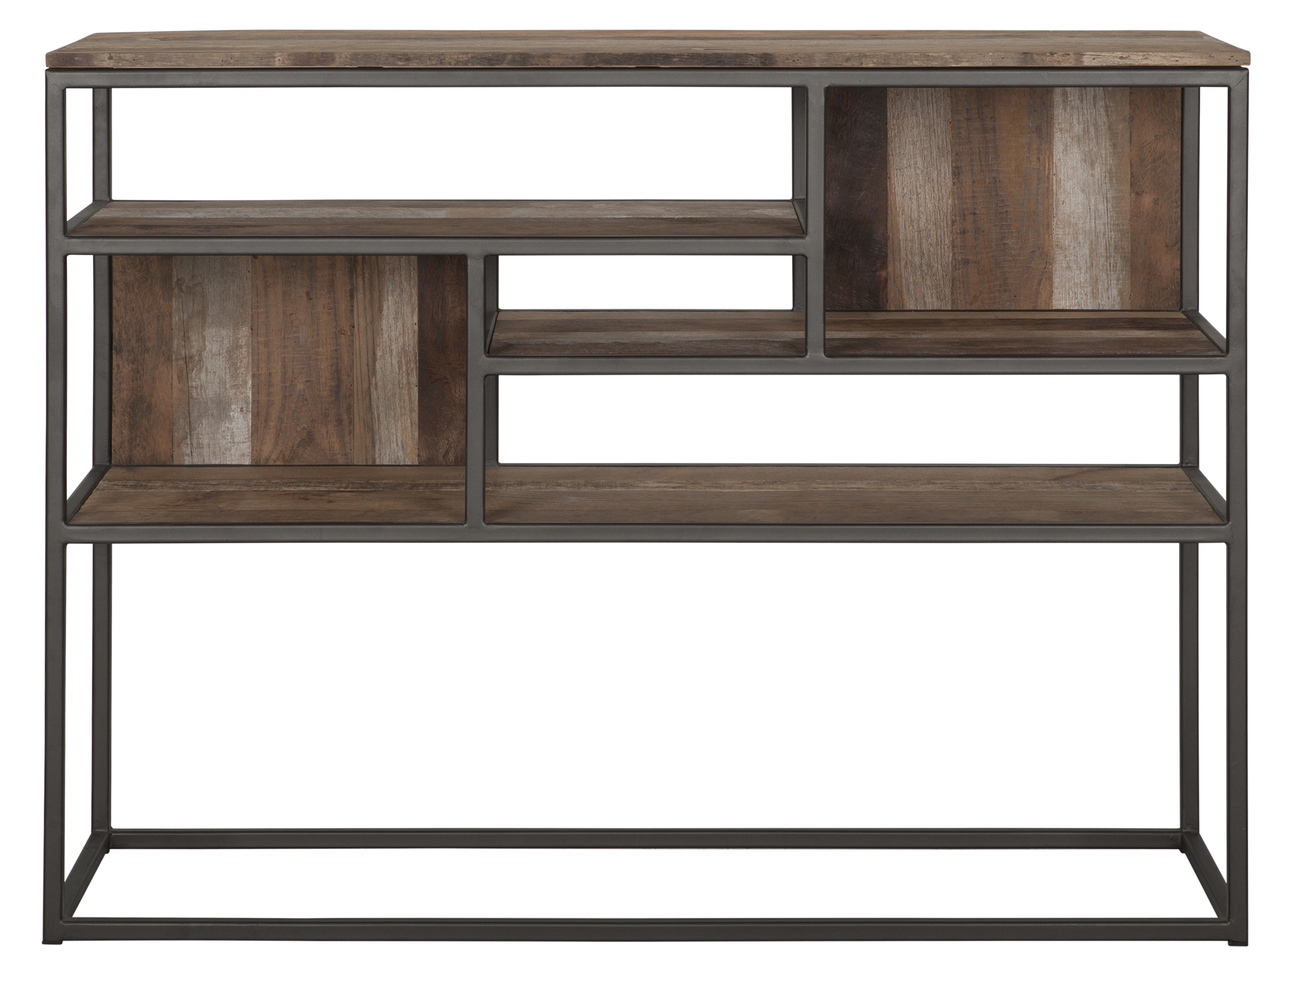 https://www.fundesign.nl/media/catalog/product/t/u/tu_660023_tuareg_sideboard_no2_1_13145010721450.jpg